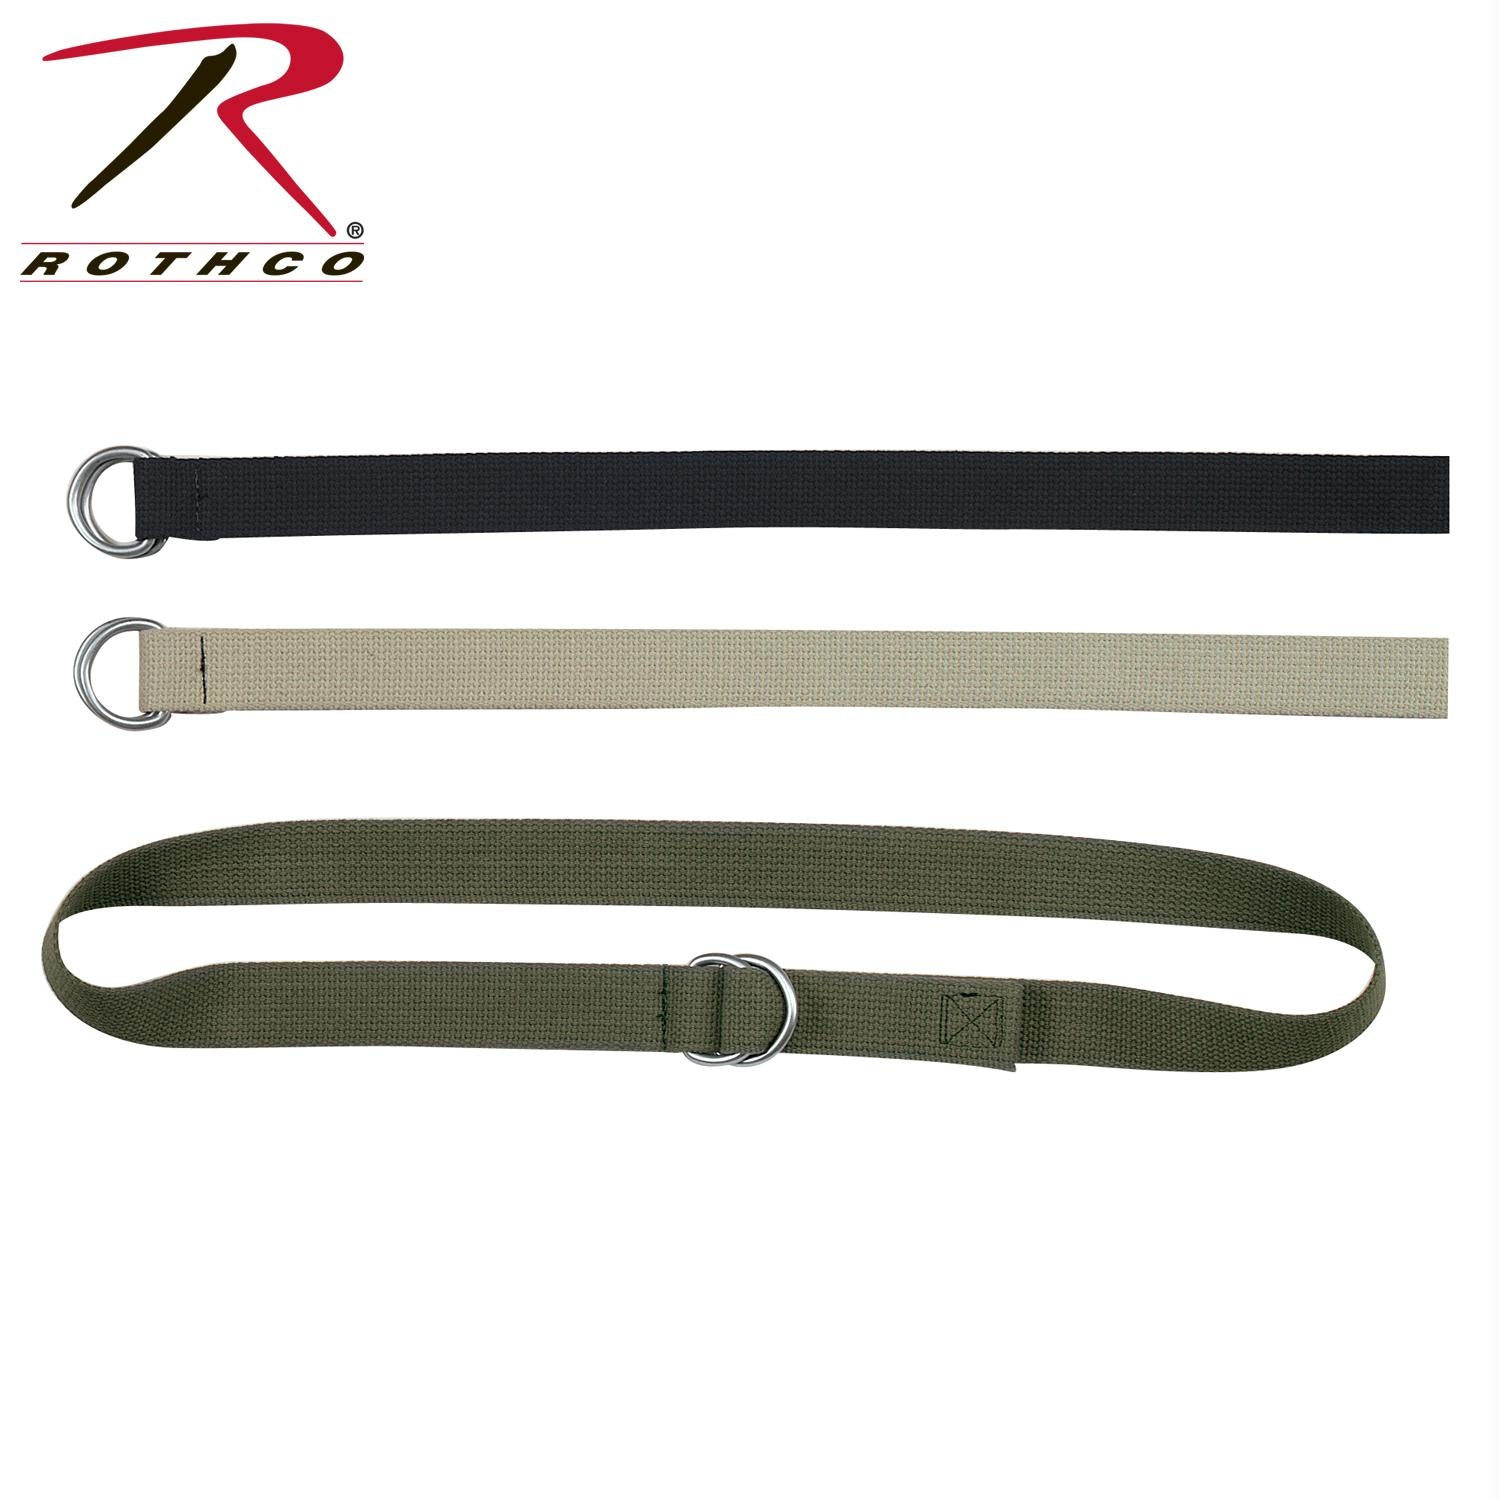 Rothco-Military D-Ring Expedition Belt - Black / XL